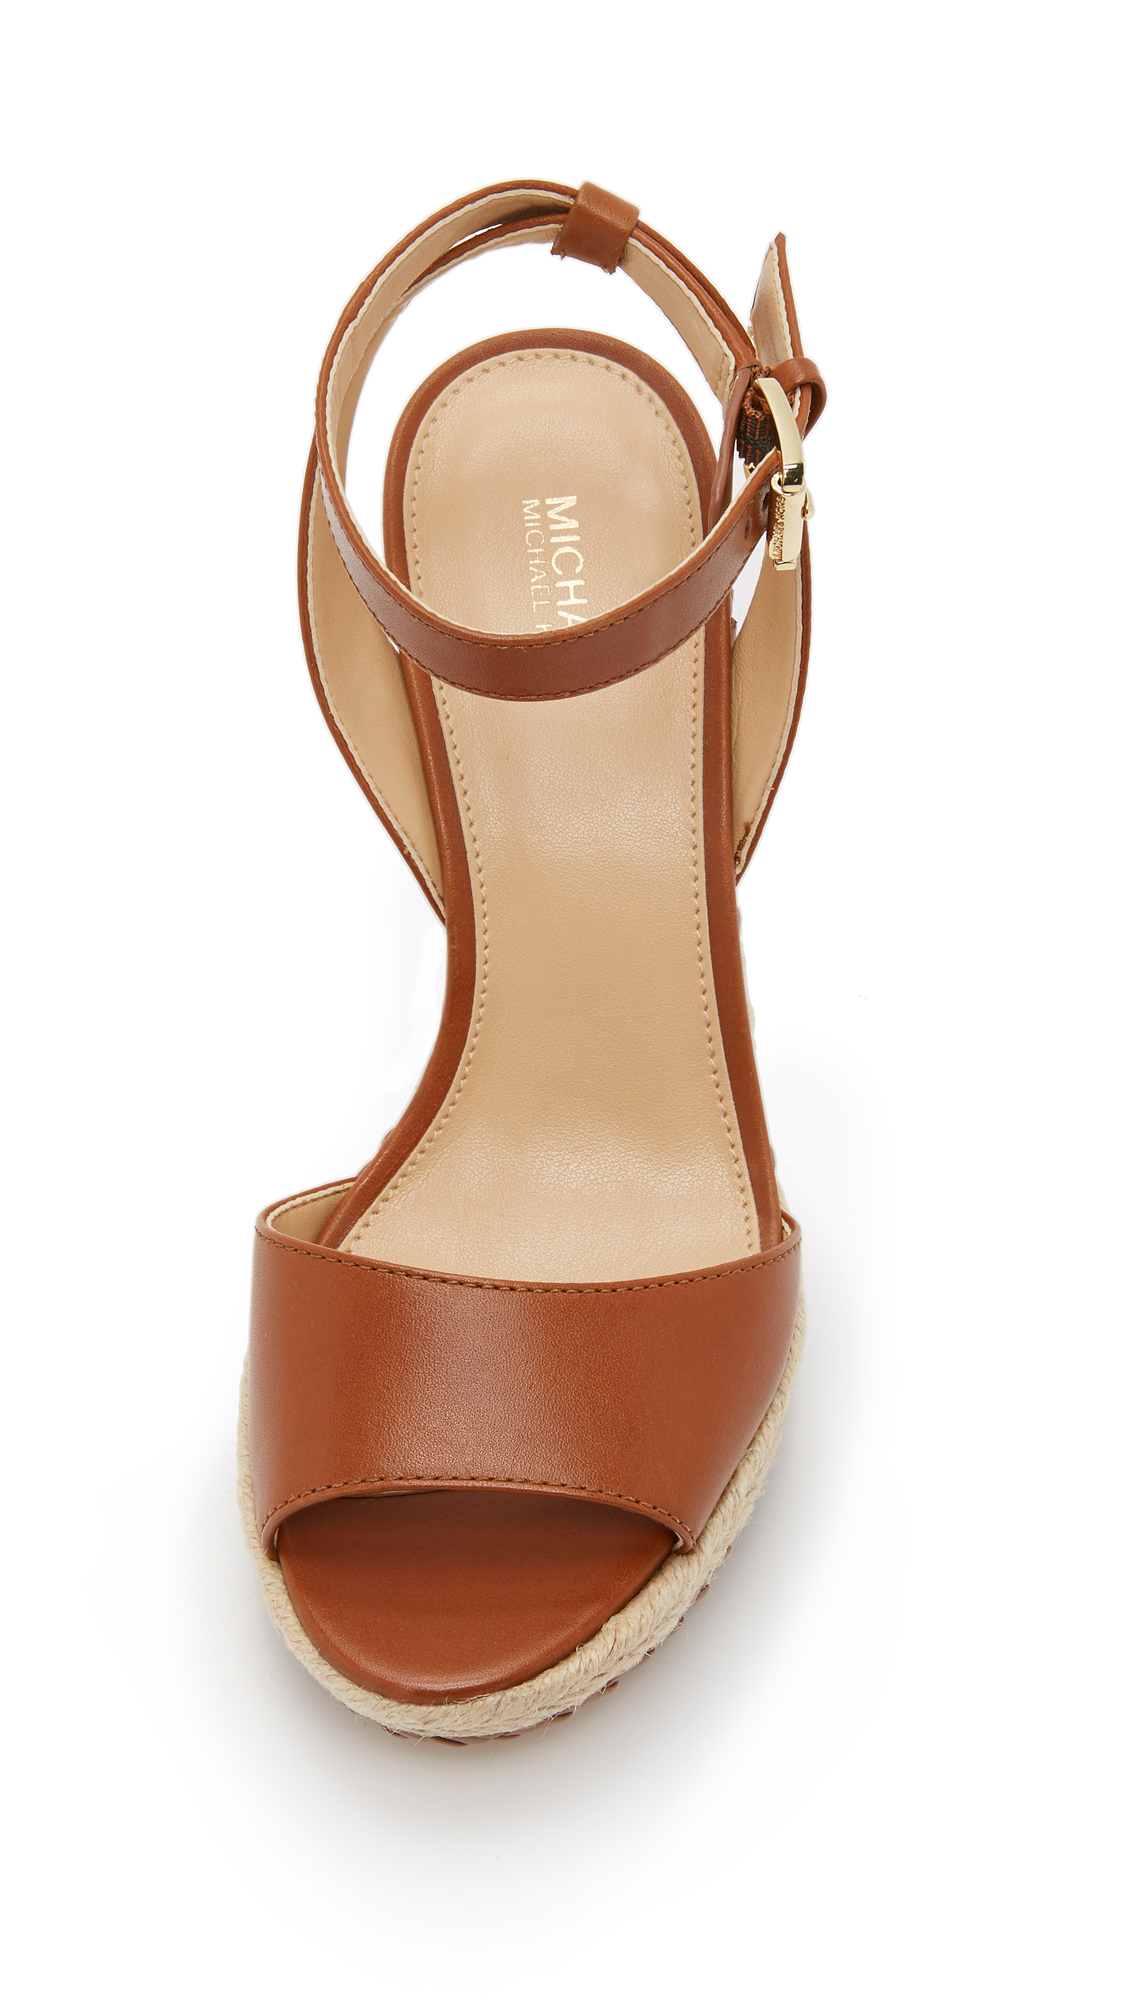 Michael Wedge SandalsShopbop Michael Wedge Kors SandalsShopbop Kyla Kyla Kors Kors Kyla Michael Wedge hsQrxdCt